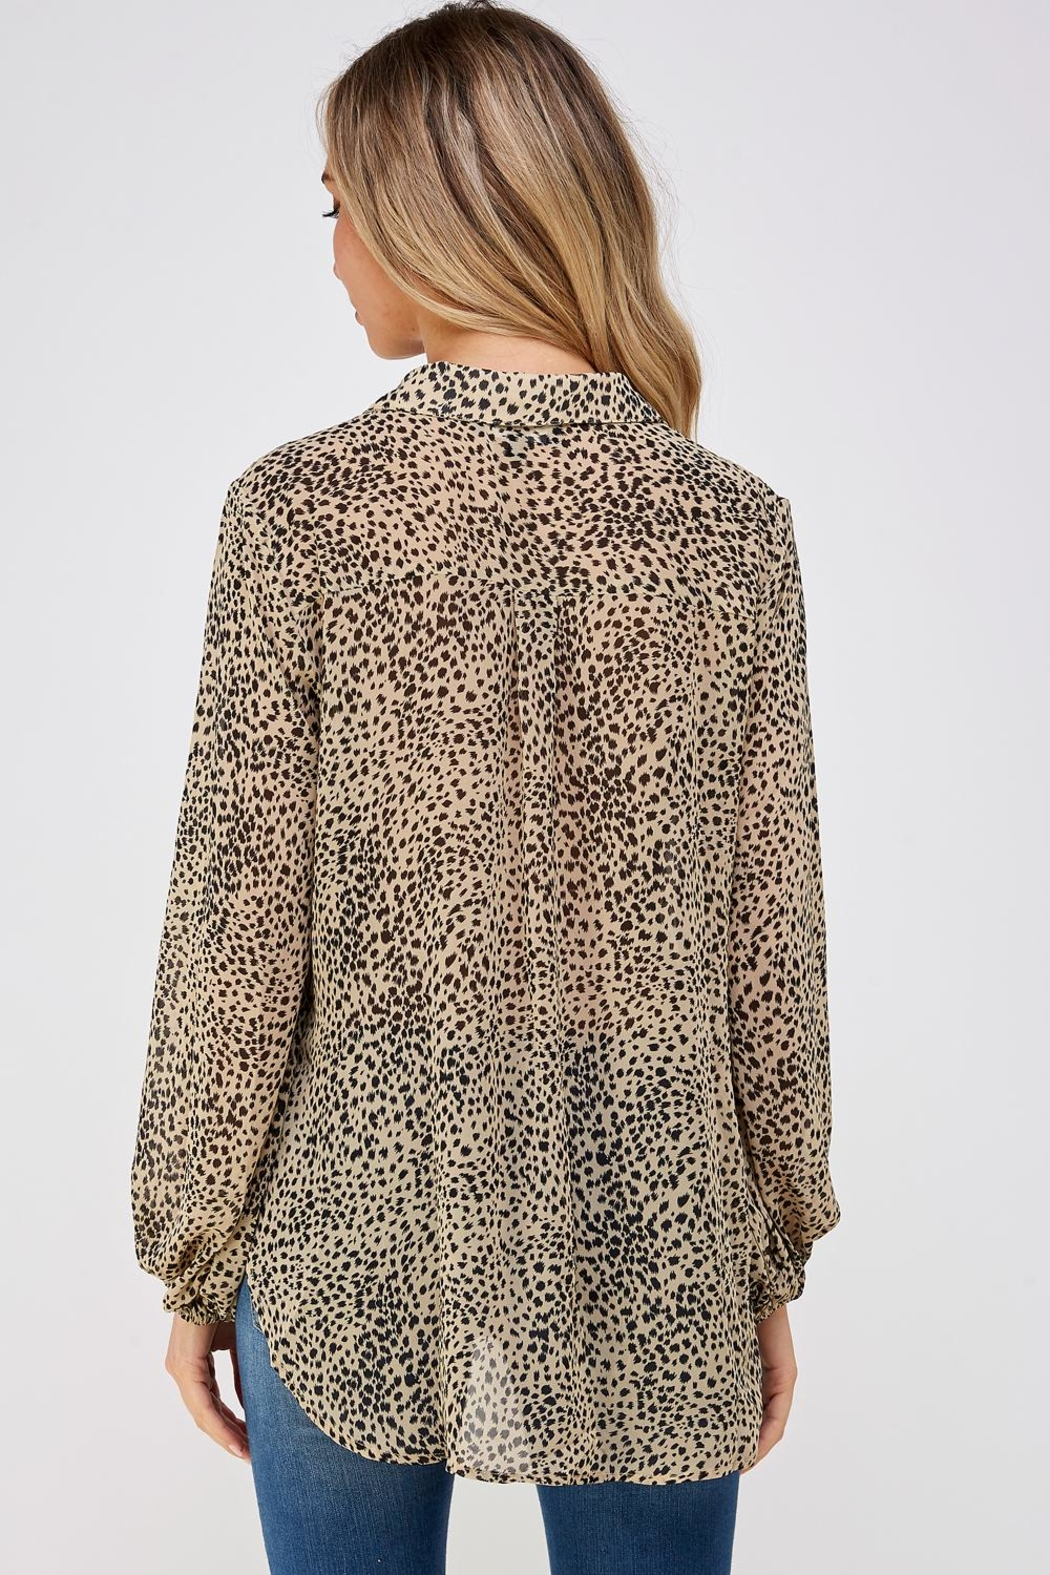 AAKAA Leopard Print Blouse - Back Cropped Image